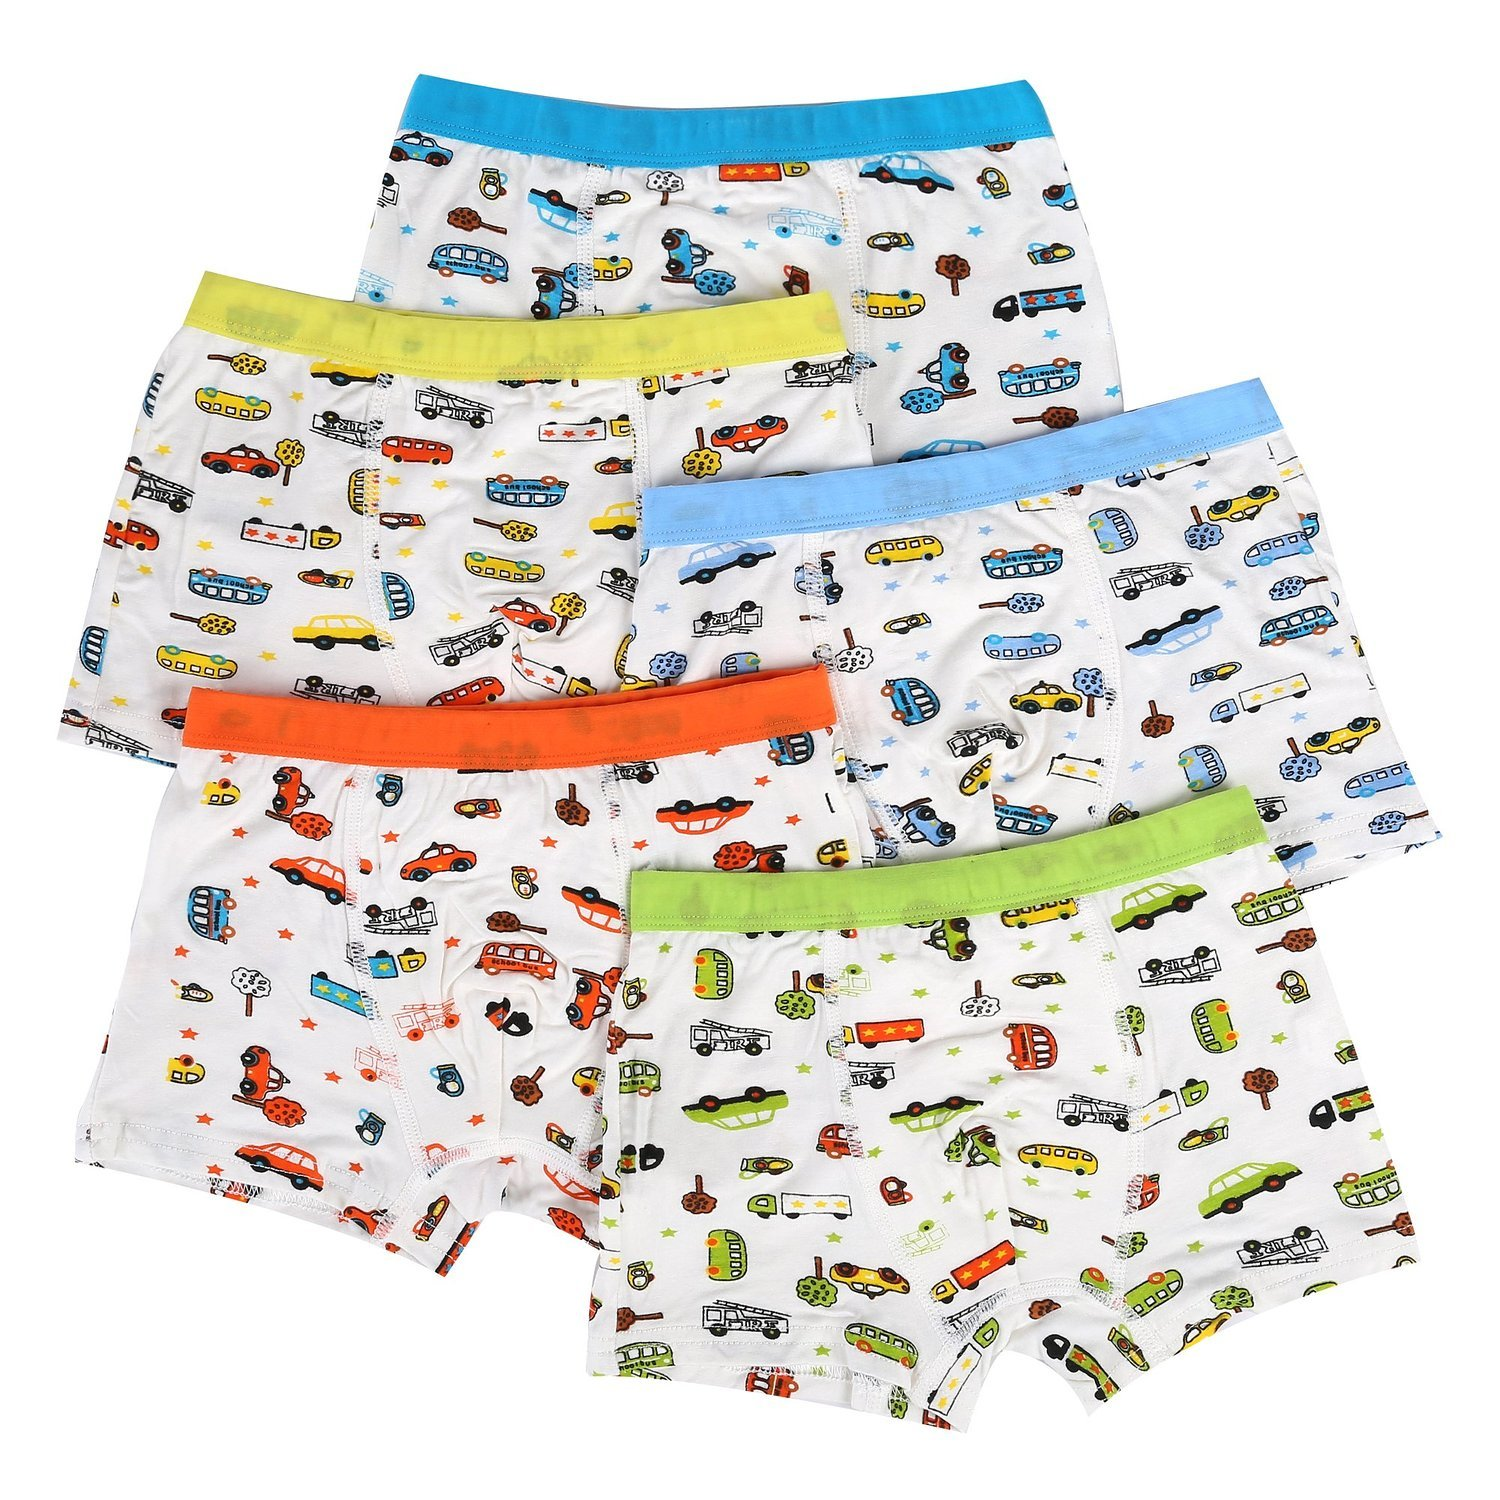 Bala Bala Boy's Boxer Brief Multicolor Underwear (Pack Of 5) (XL/Car Underwear, (Pack Of 5)/Car Underwear) by Bala Bala (Image #1)